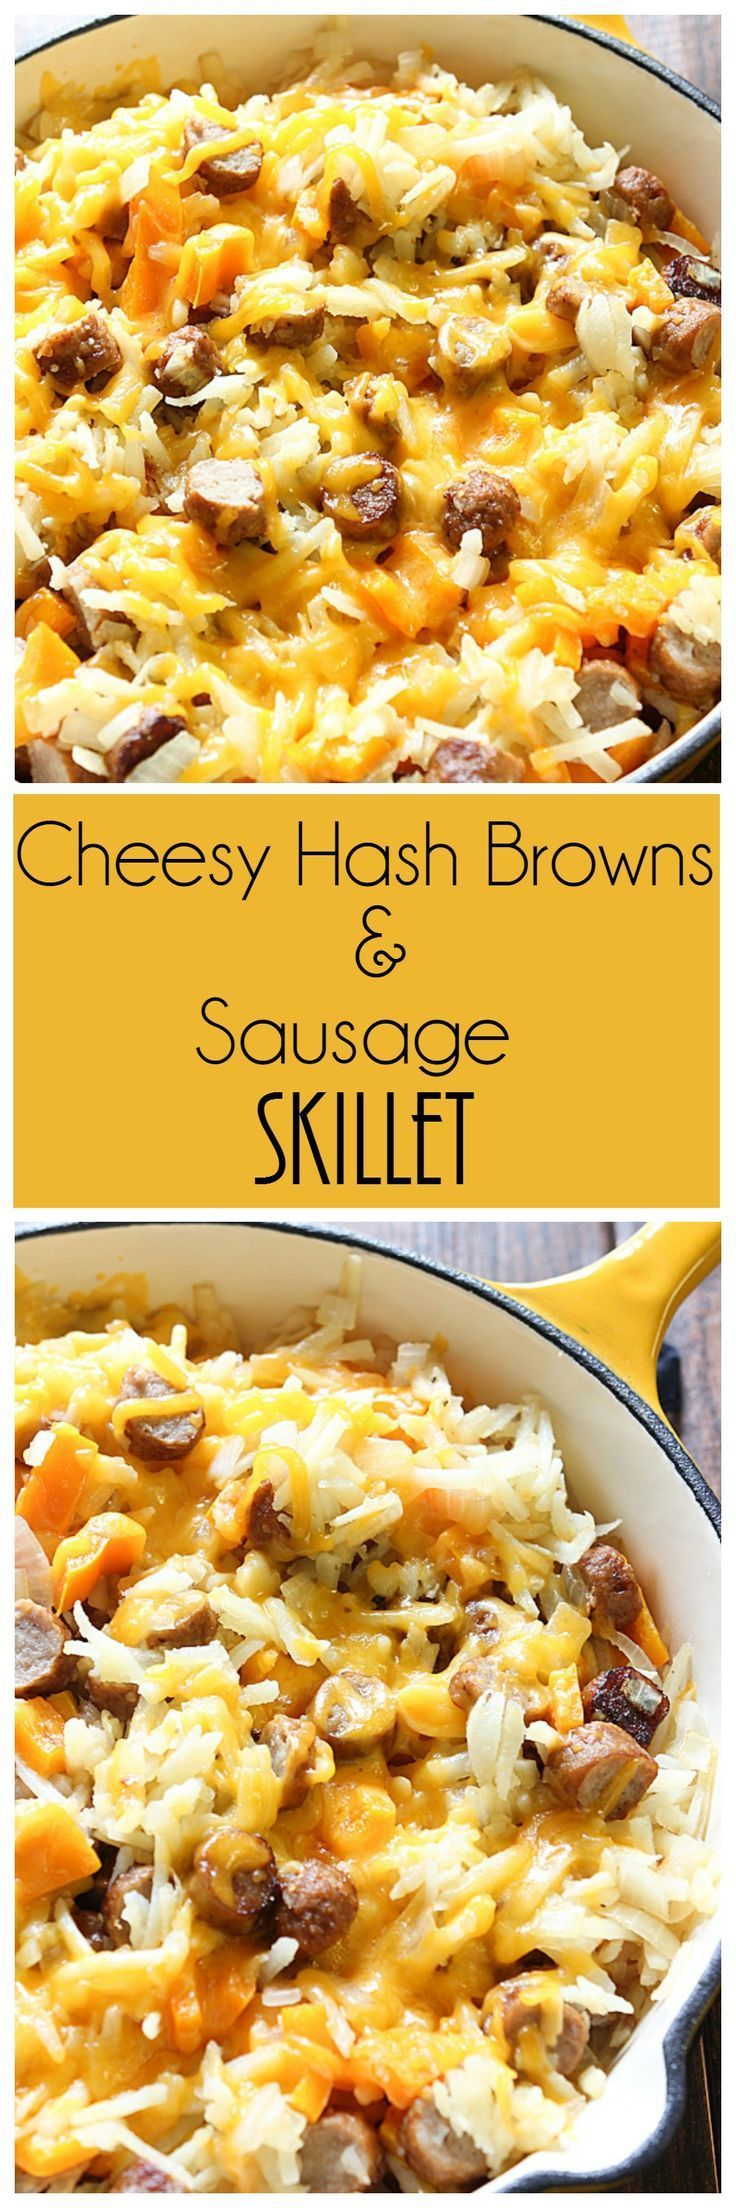 Wake your family up with the delicious aroma of this Cheesy Hash Browns and Sausage Skillet. It's an easy breakfast meal that takes no time all to make.